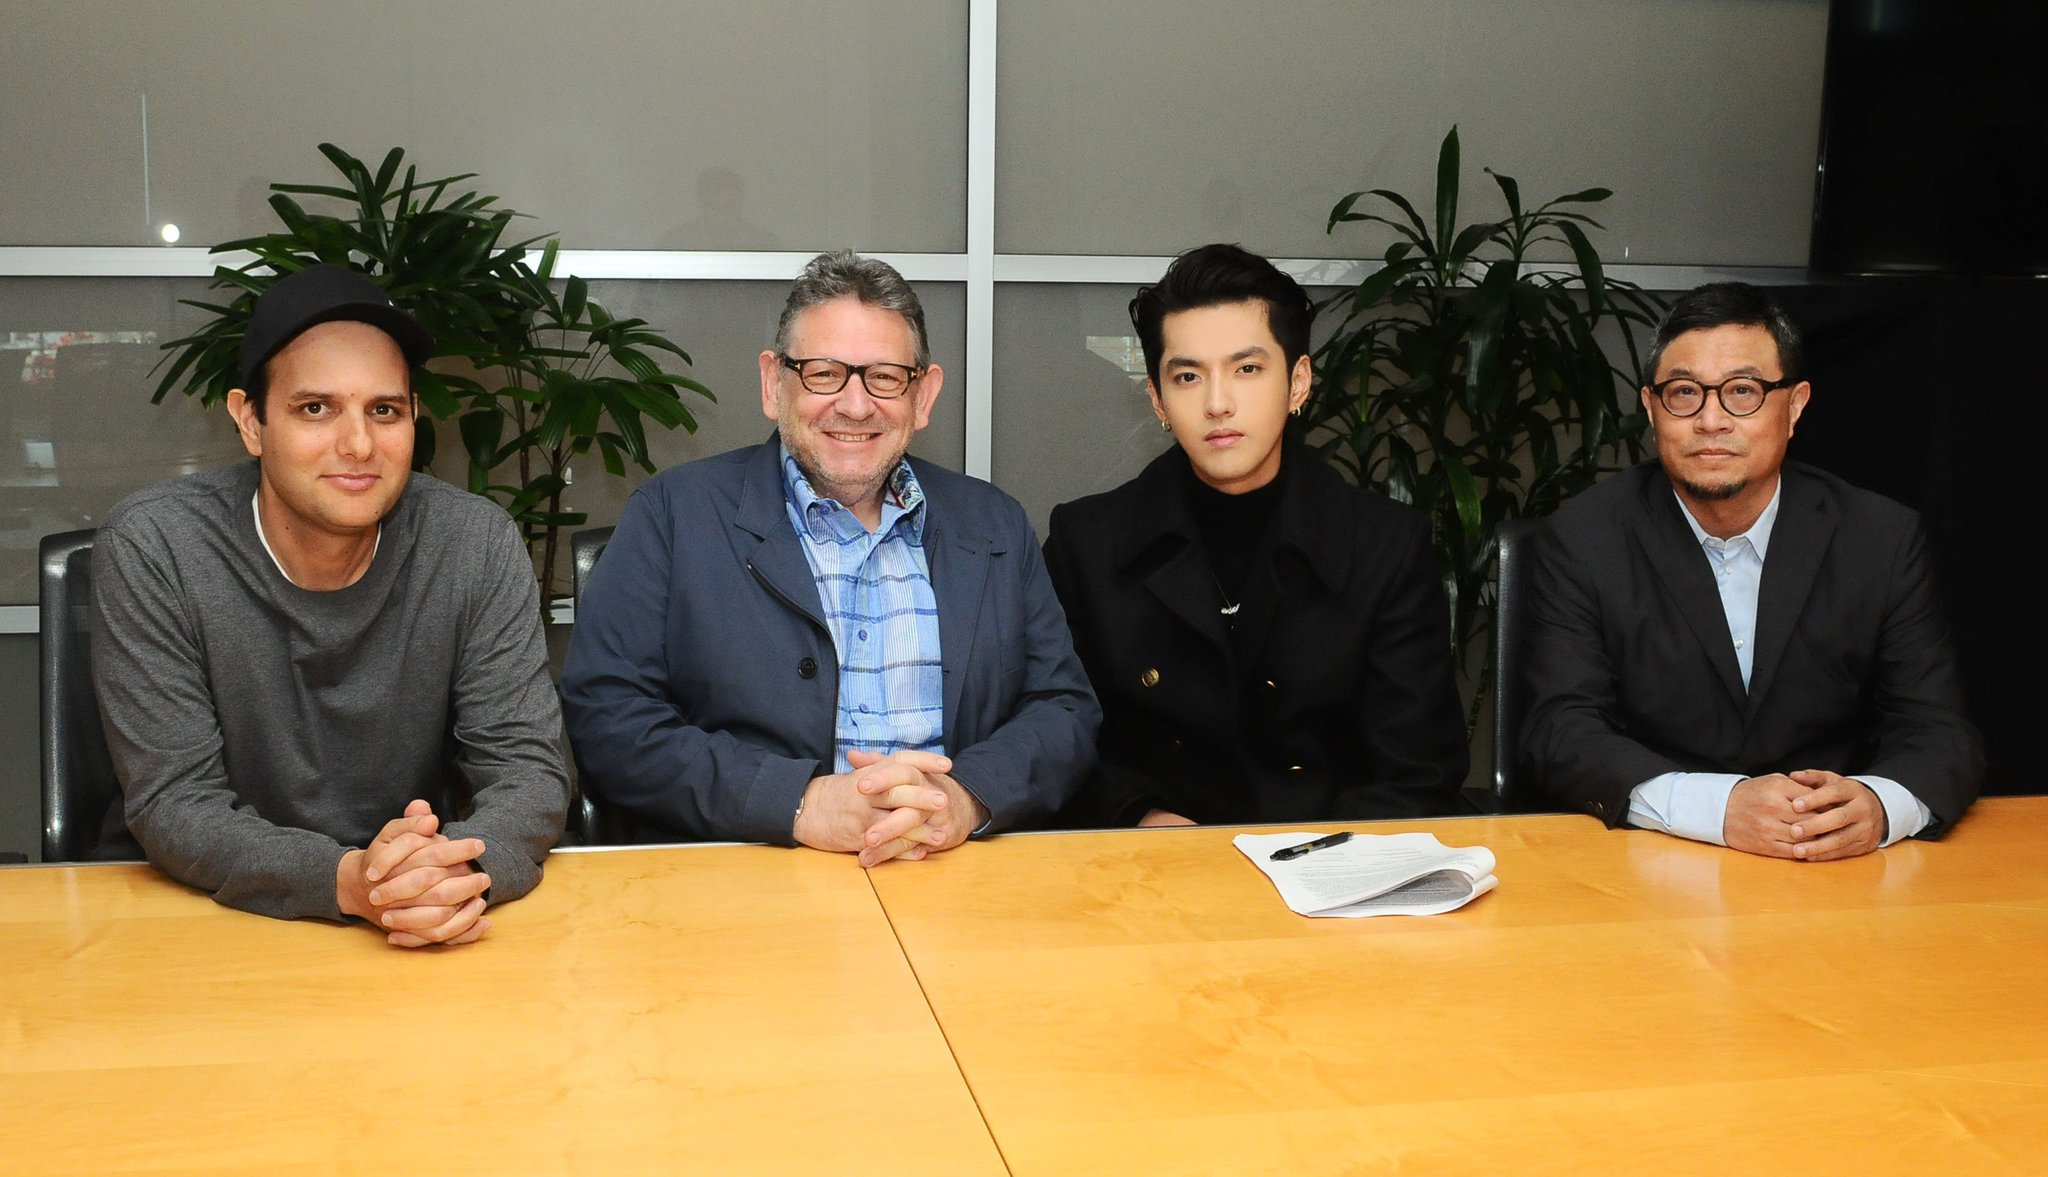 BREAKING �� Global superstar, @KrisWu signs global recording deal with Universal Music Group. https://t.co/Yp8tDCyJGc